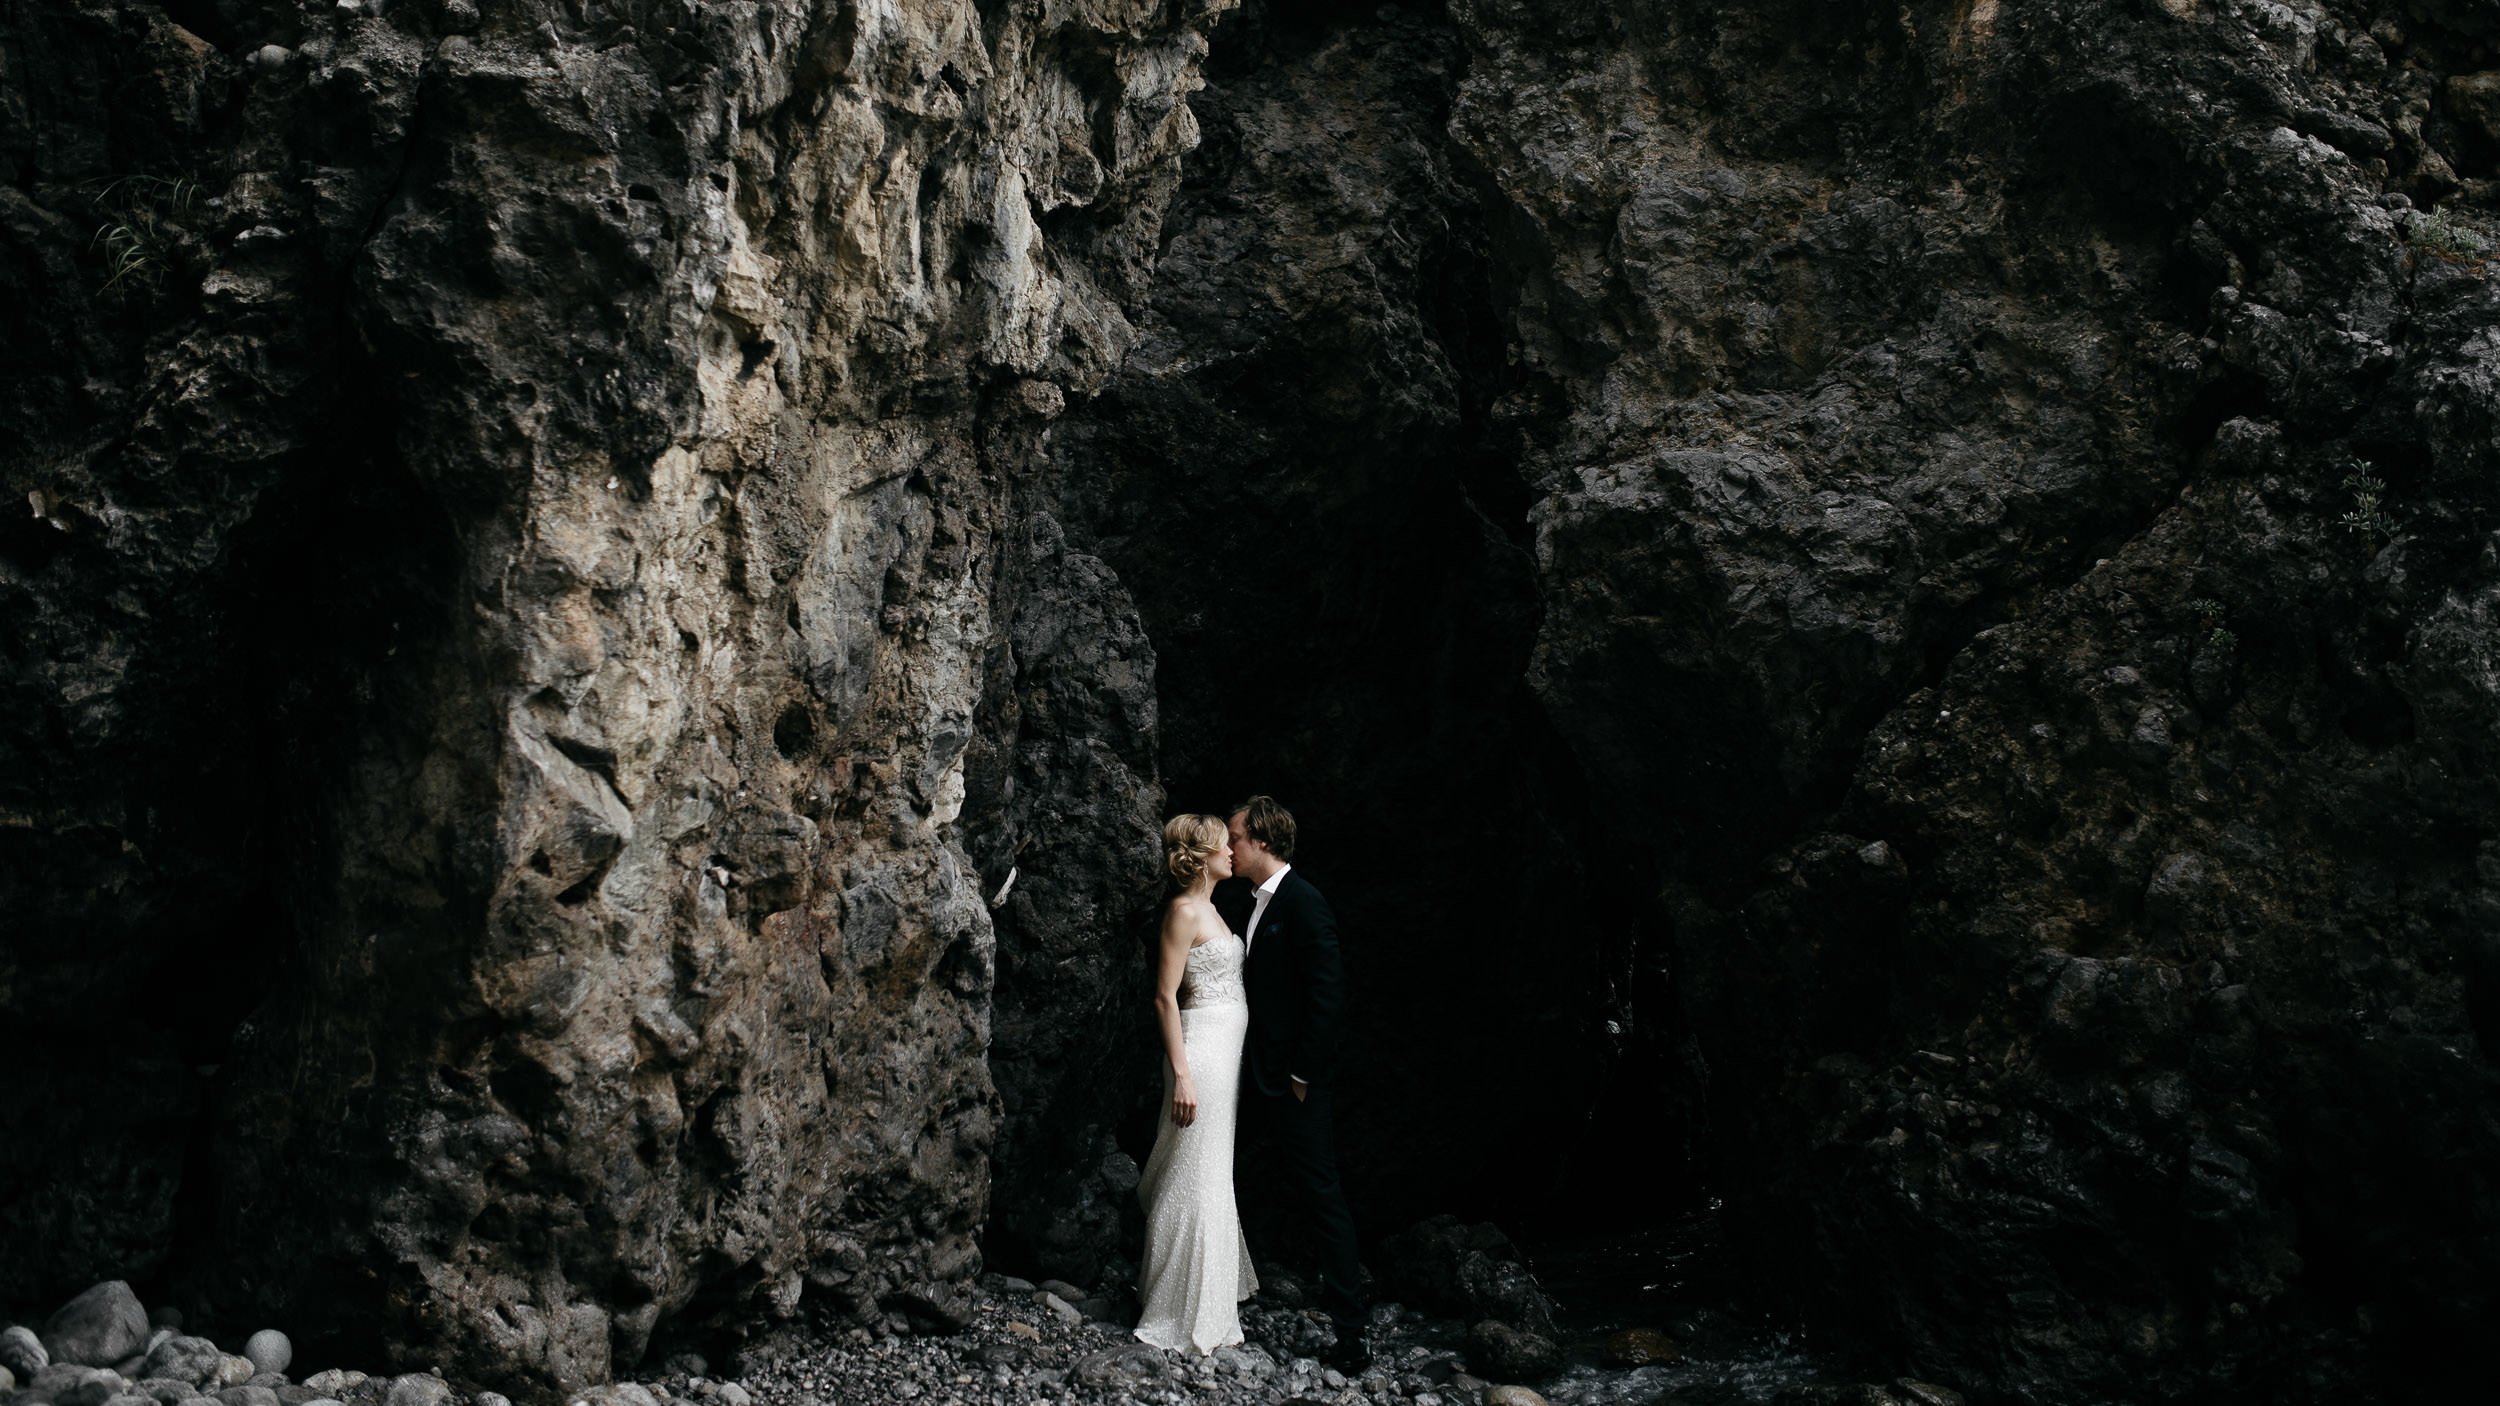 Jean-Laurent Gaudy, Skogafoss Destination Wedding Elopement Photographer.